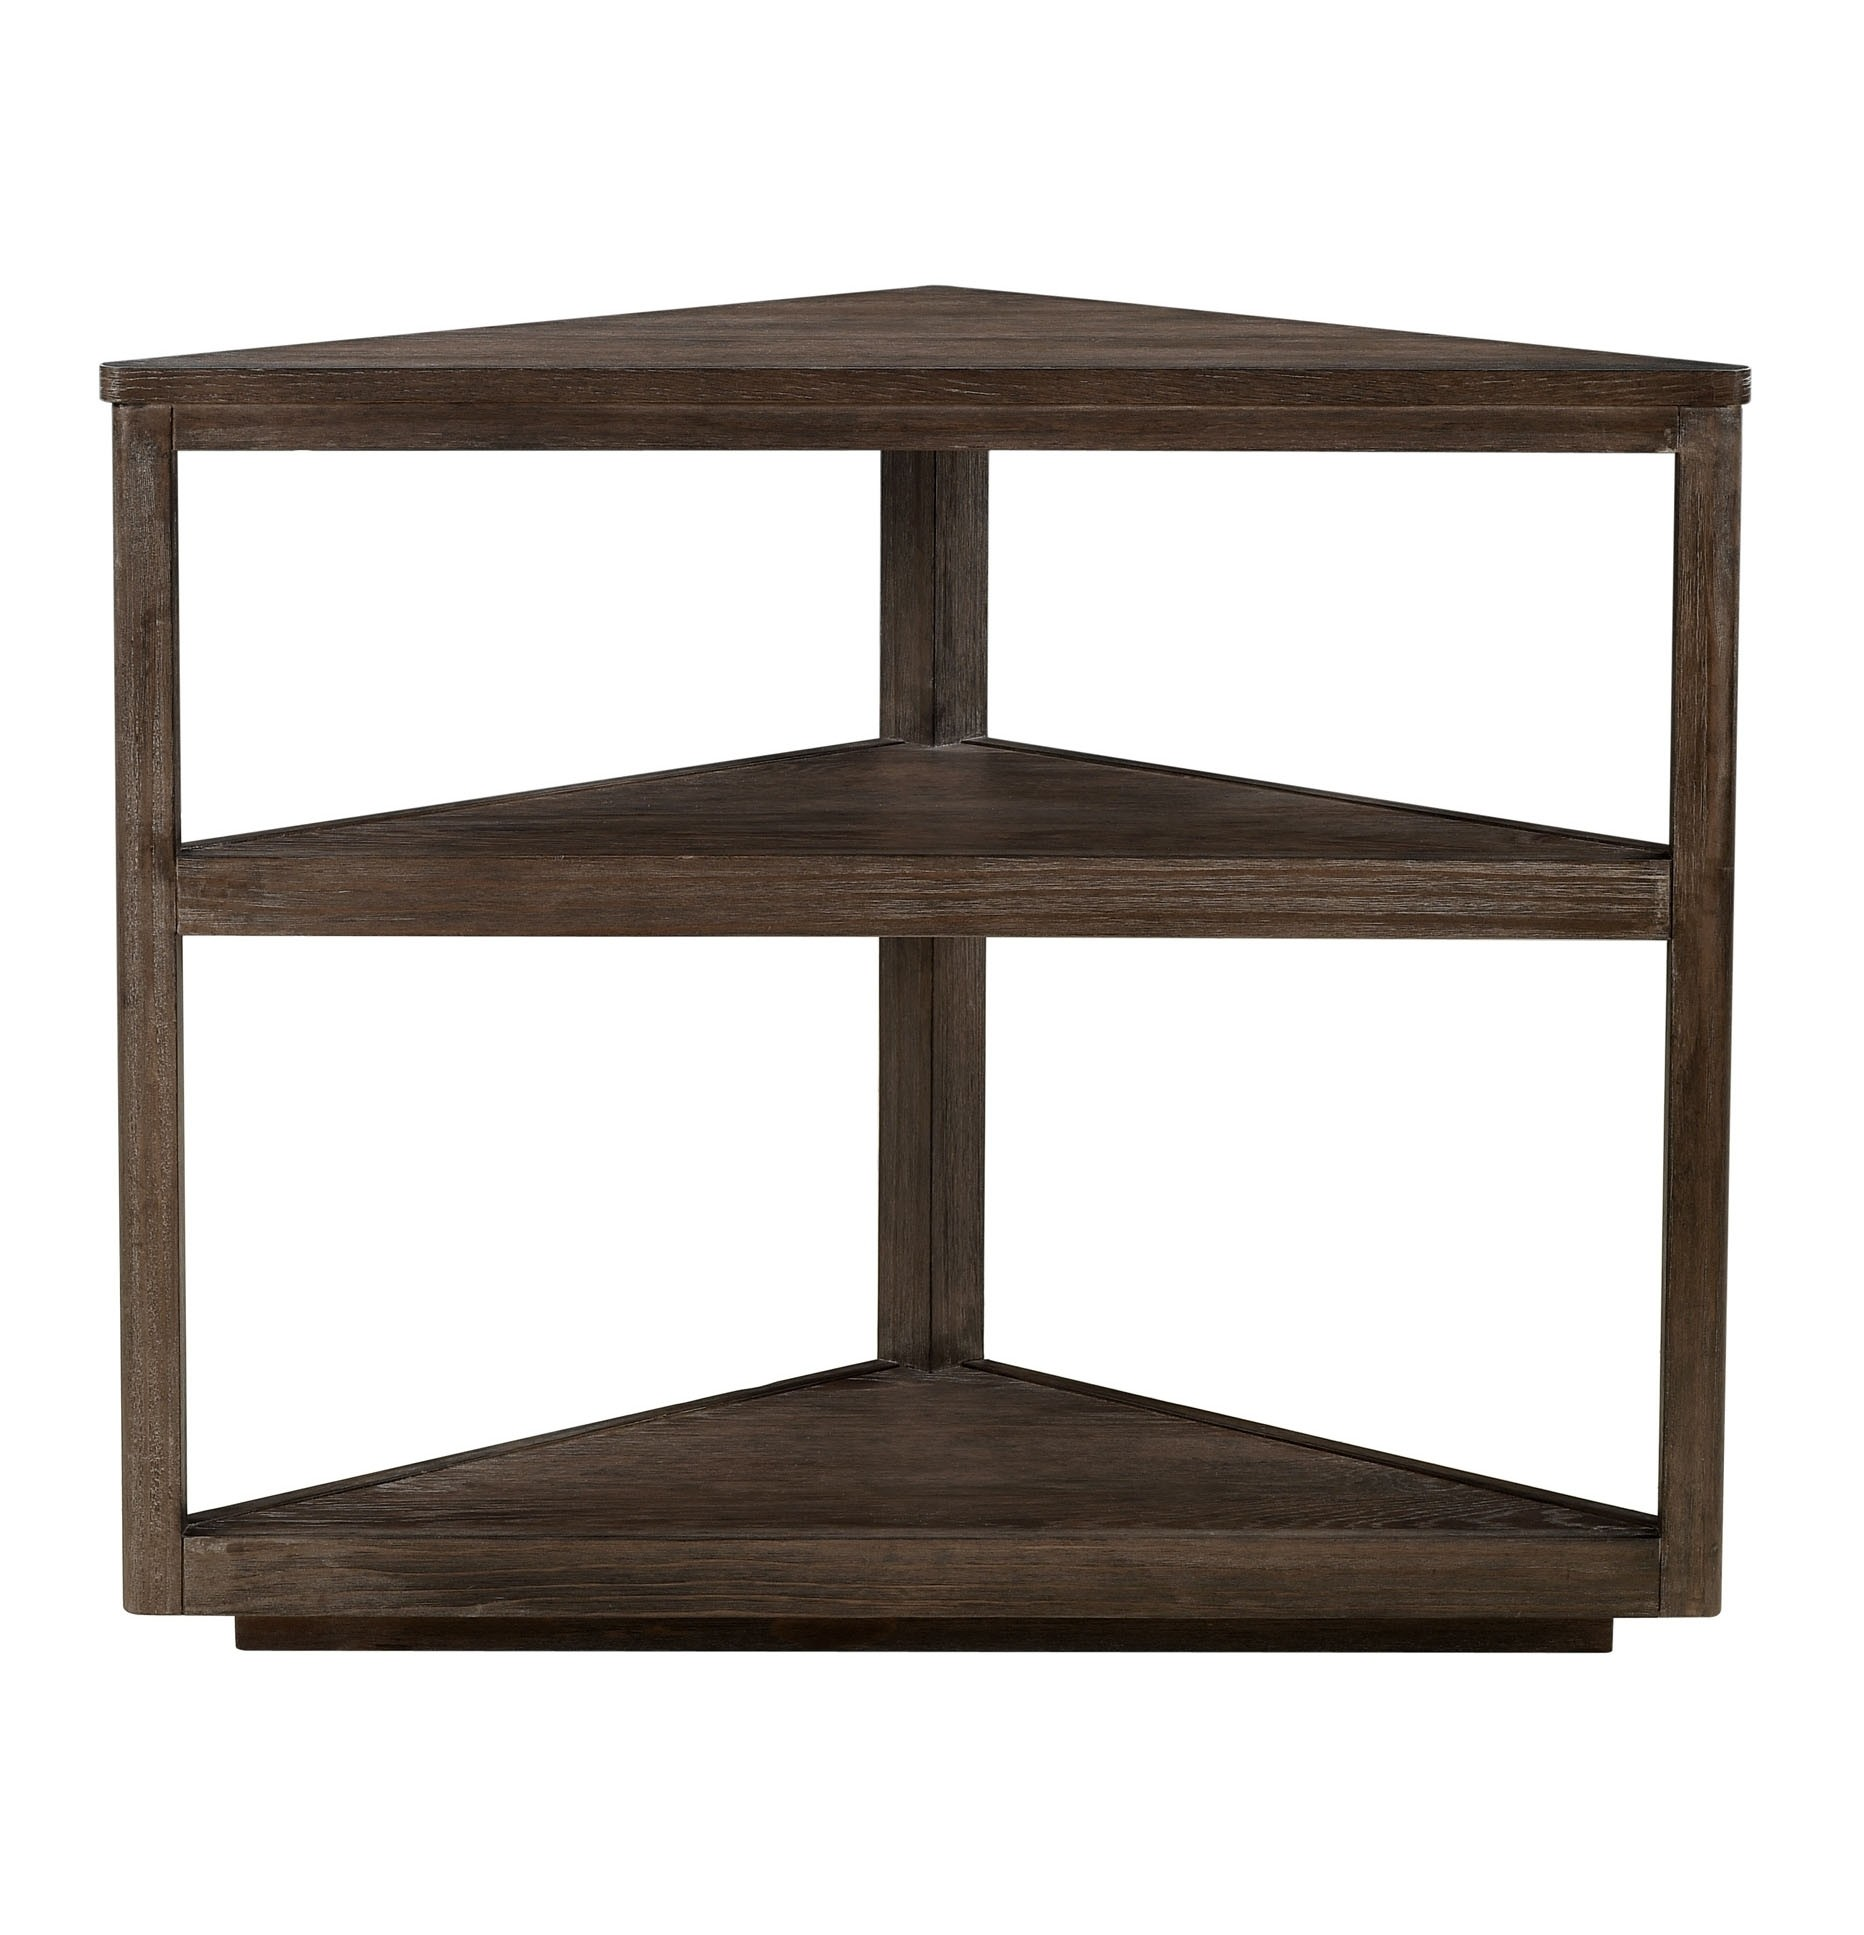 geode quarry end table accent large console cabinet colored glass coffee black nest tables ikea small pub and chairs corner legs for round target windham furniture placemats three